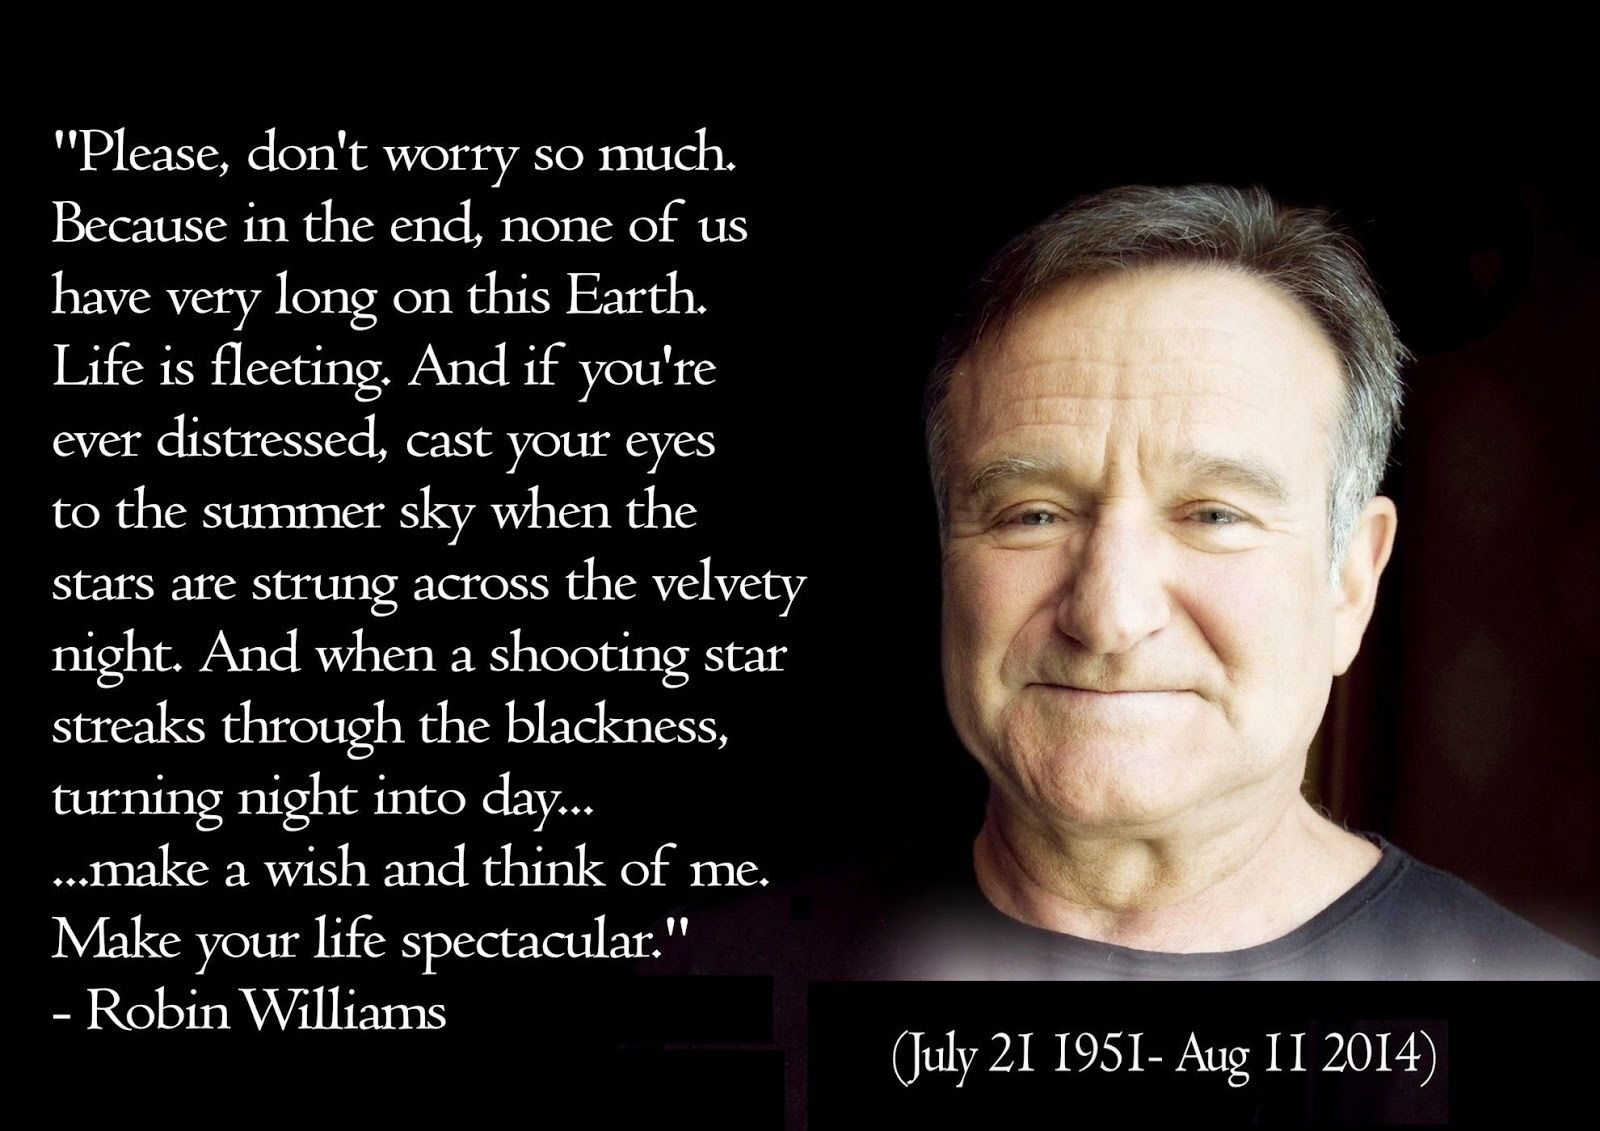 Pin By Suzanne On I Believe Robin Williams Quotes Life Quotes Great Quotes About Life